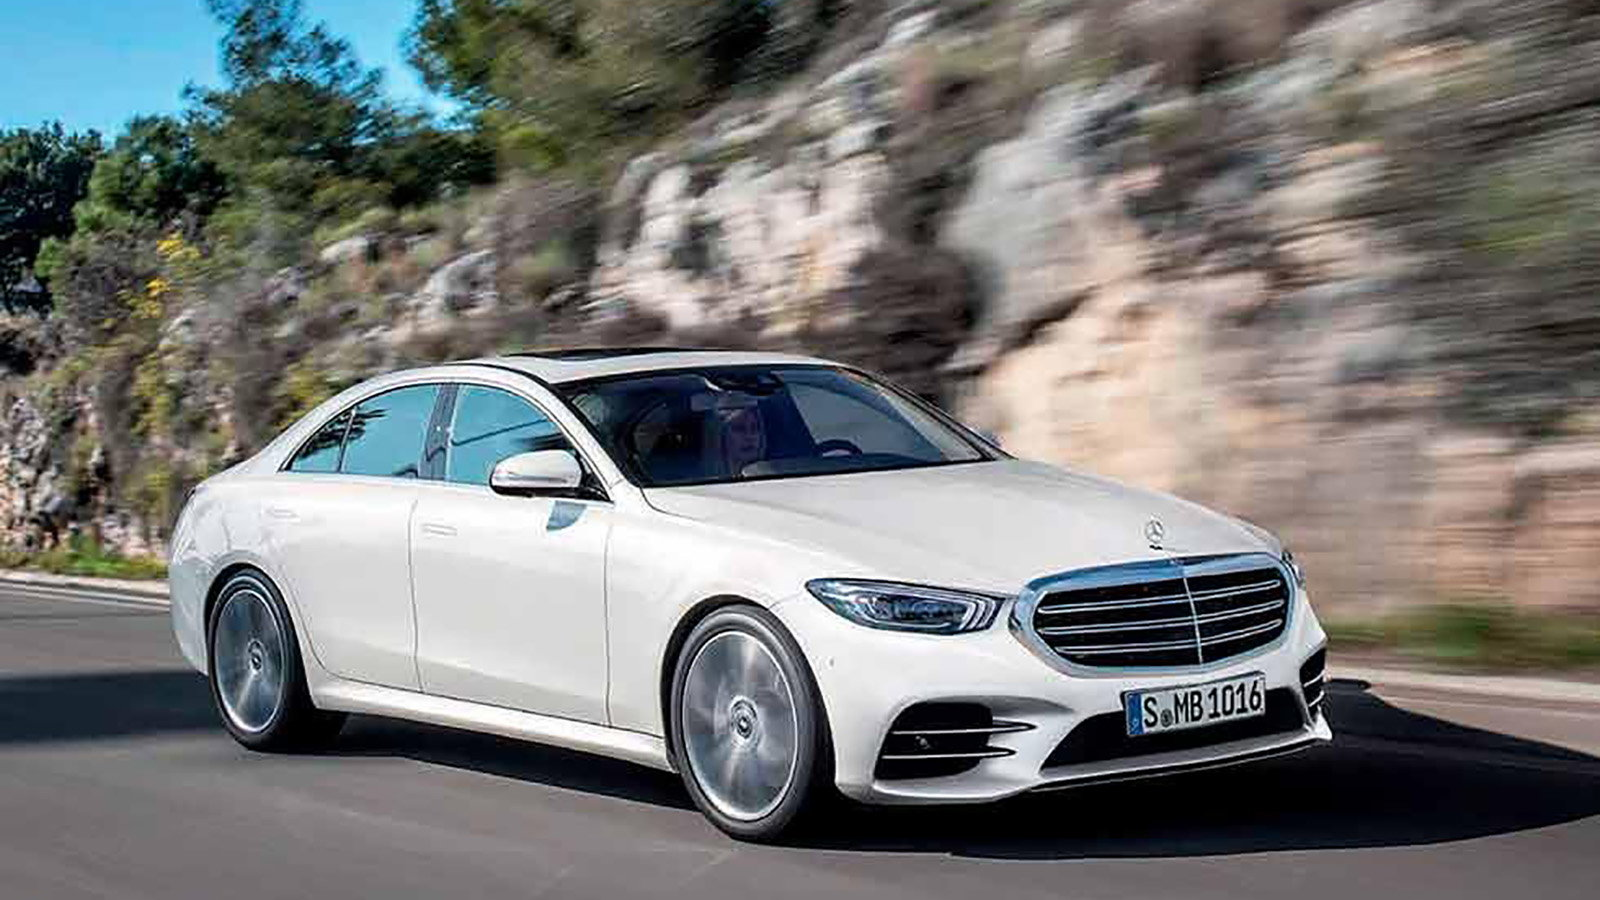 Here's What Could Be the New & Very Sleek 2021 S-Class ...